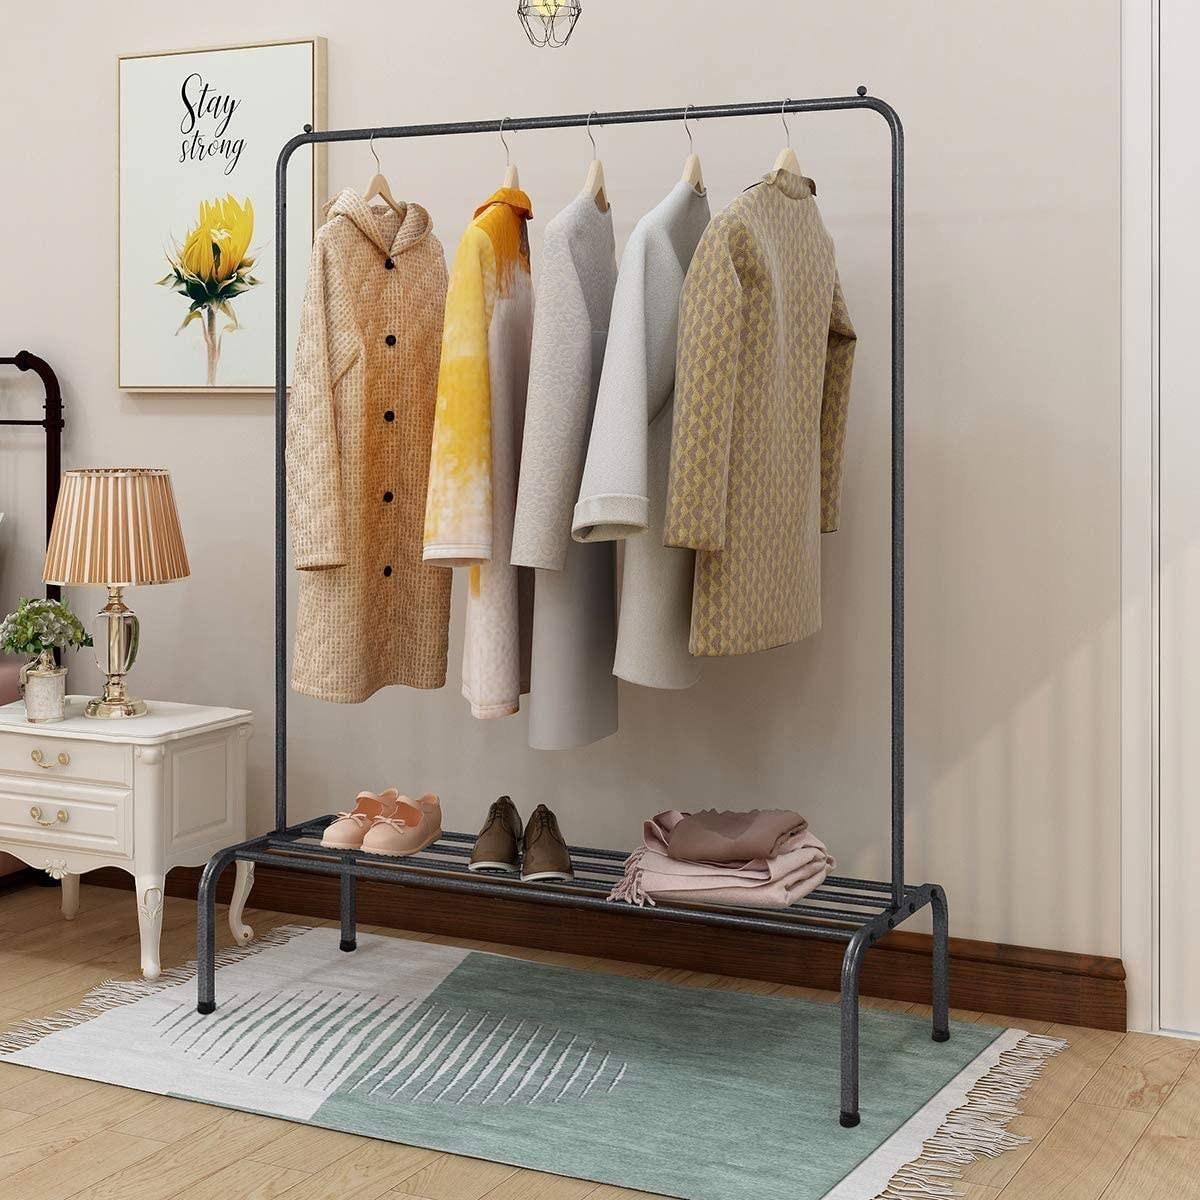 the rack with clothes and shoes